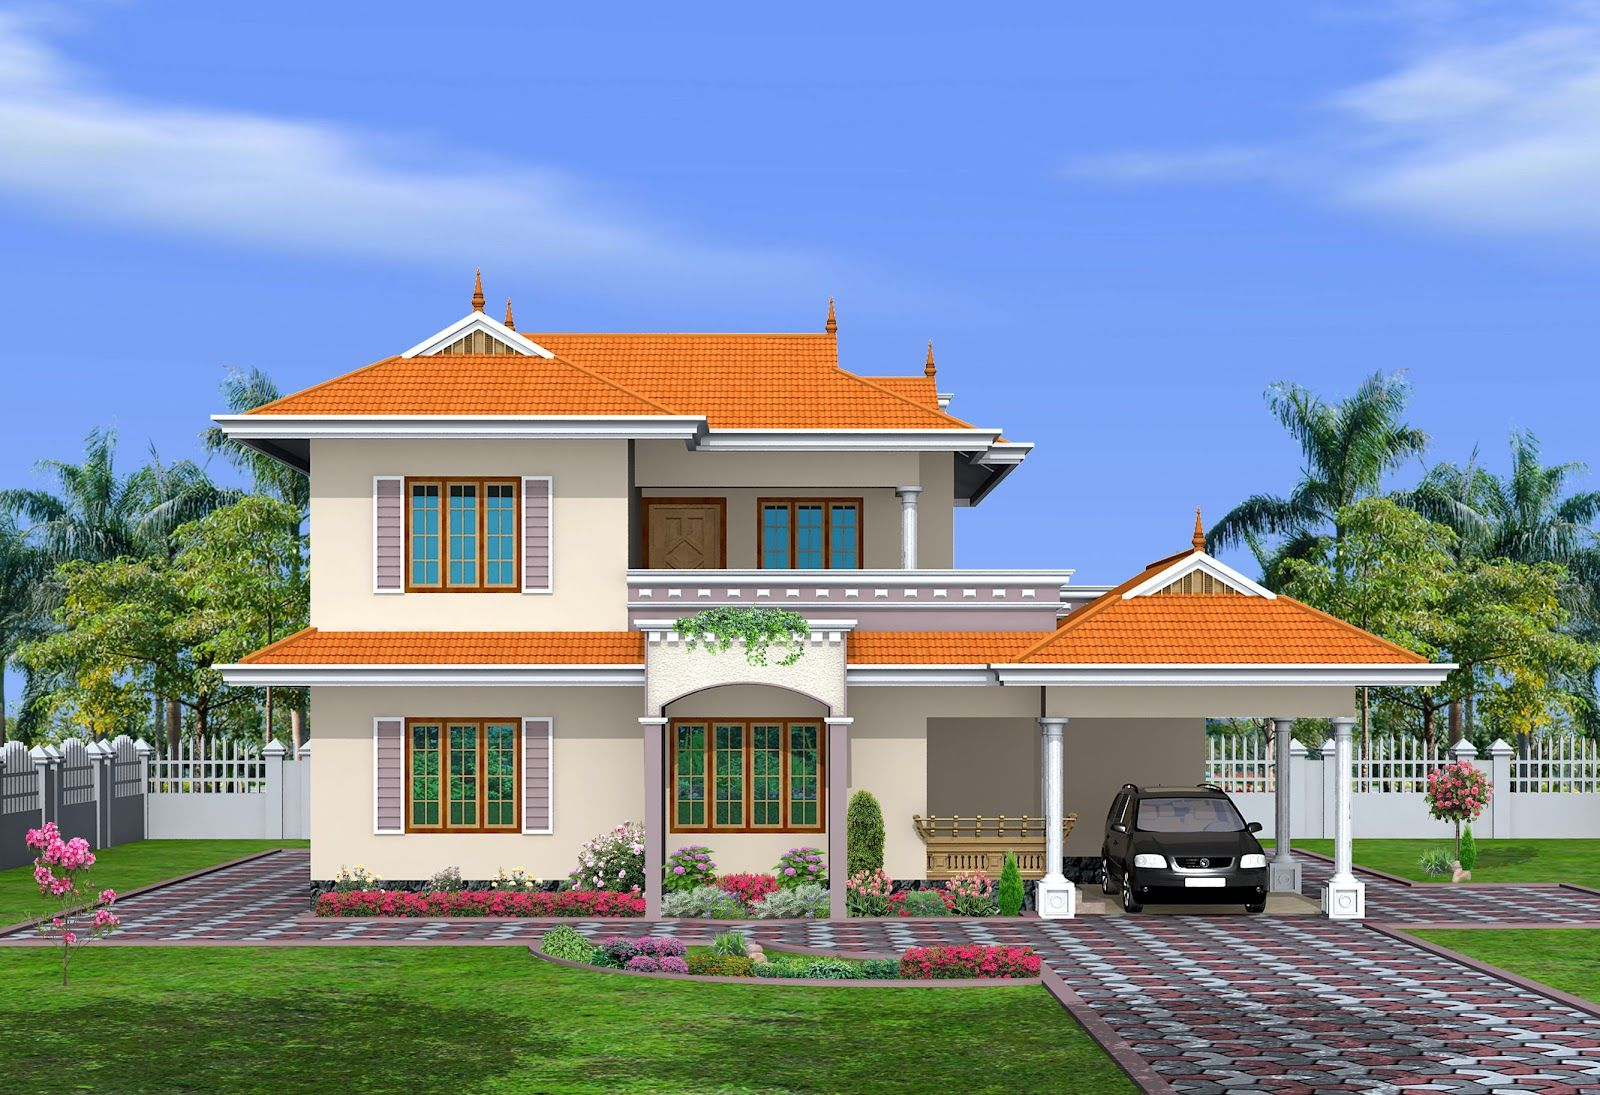 Indian Home Exterior Designs Gallery Styles Of Homes With Pictures 2 Storey House Design Cute766